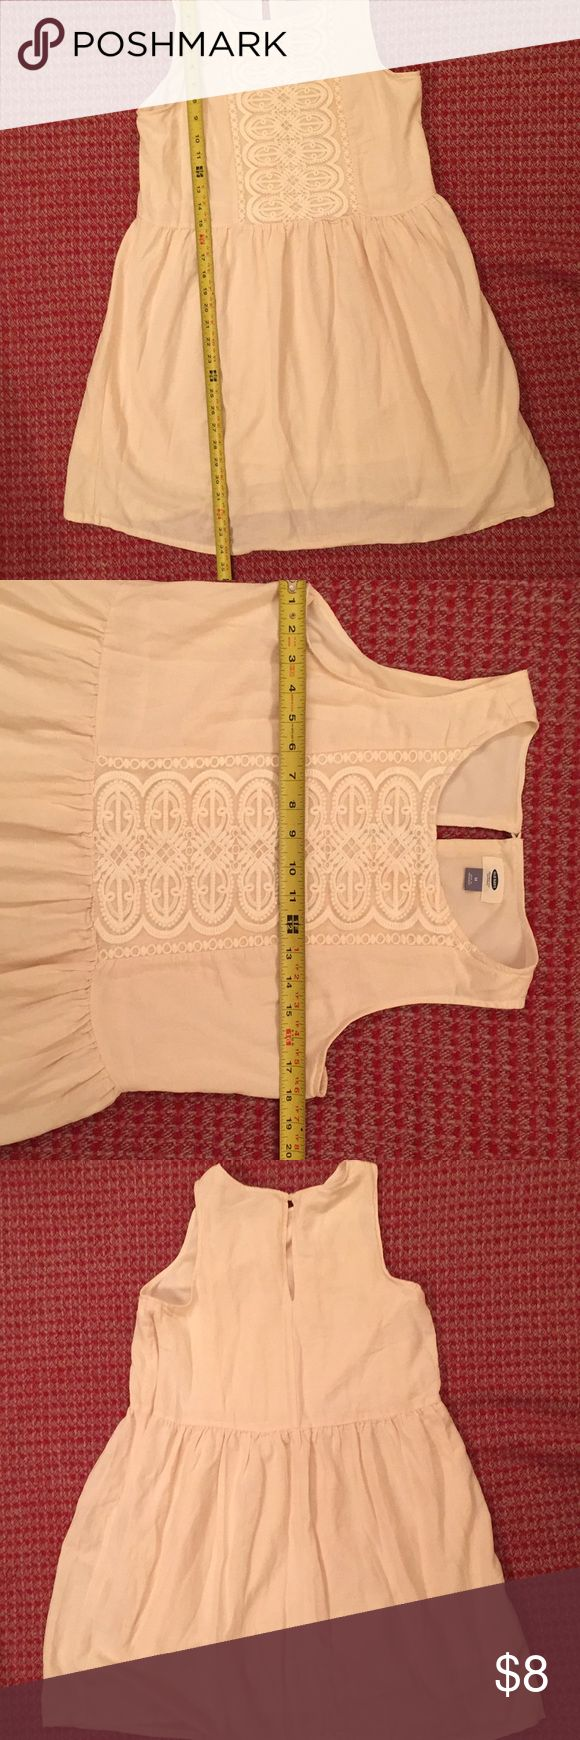 Old navy cream colored beach dress Cream colored with cream lining , a side zipper, a key hole button in the back and a crochet front. A awesome summer companion. By old navy. Old Navy Dresses